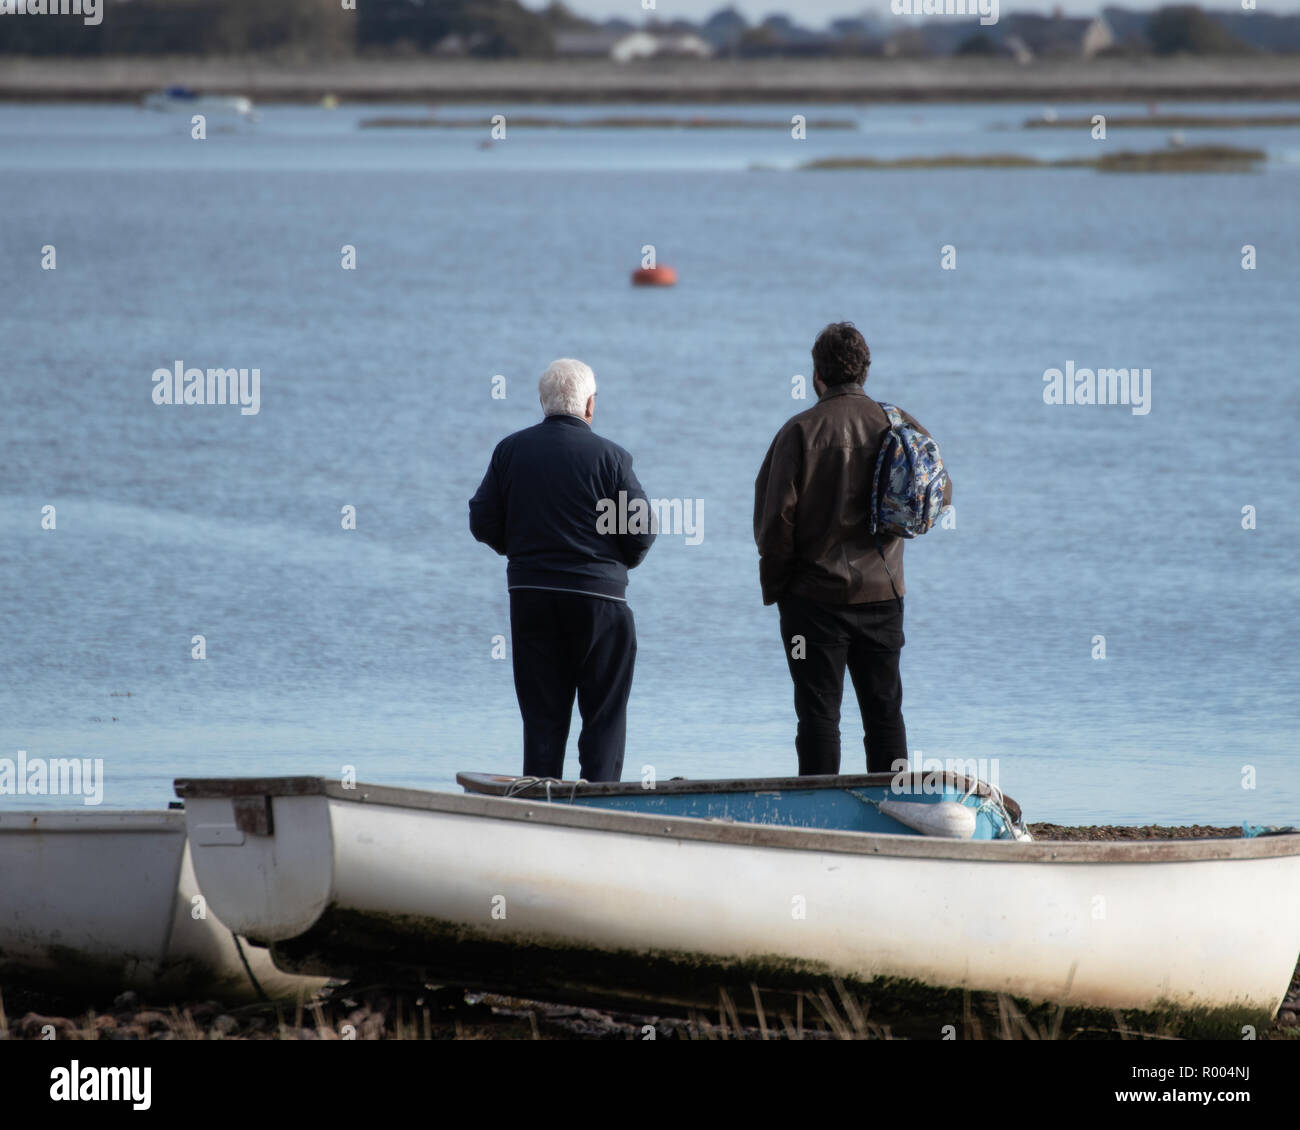 elderly father and grown up son looking out to see at the coast with an old wooden boat in the foreground - Stock Image